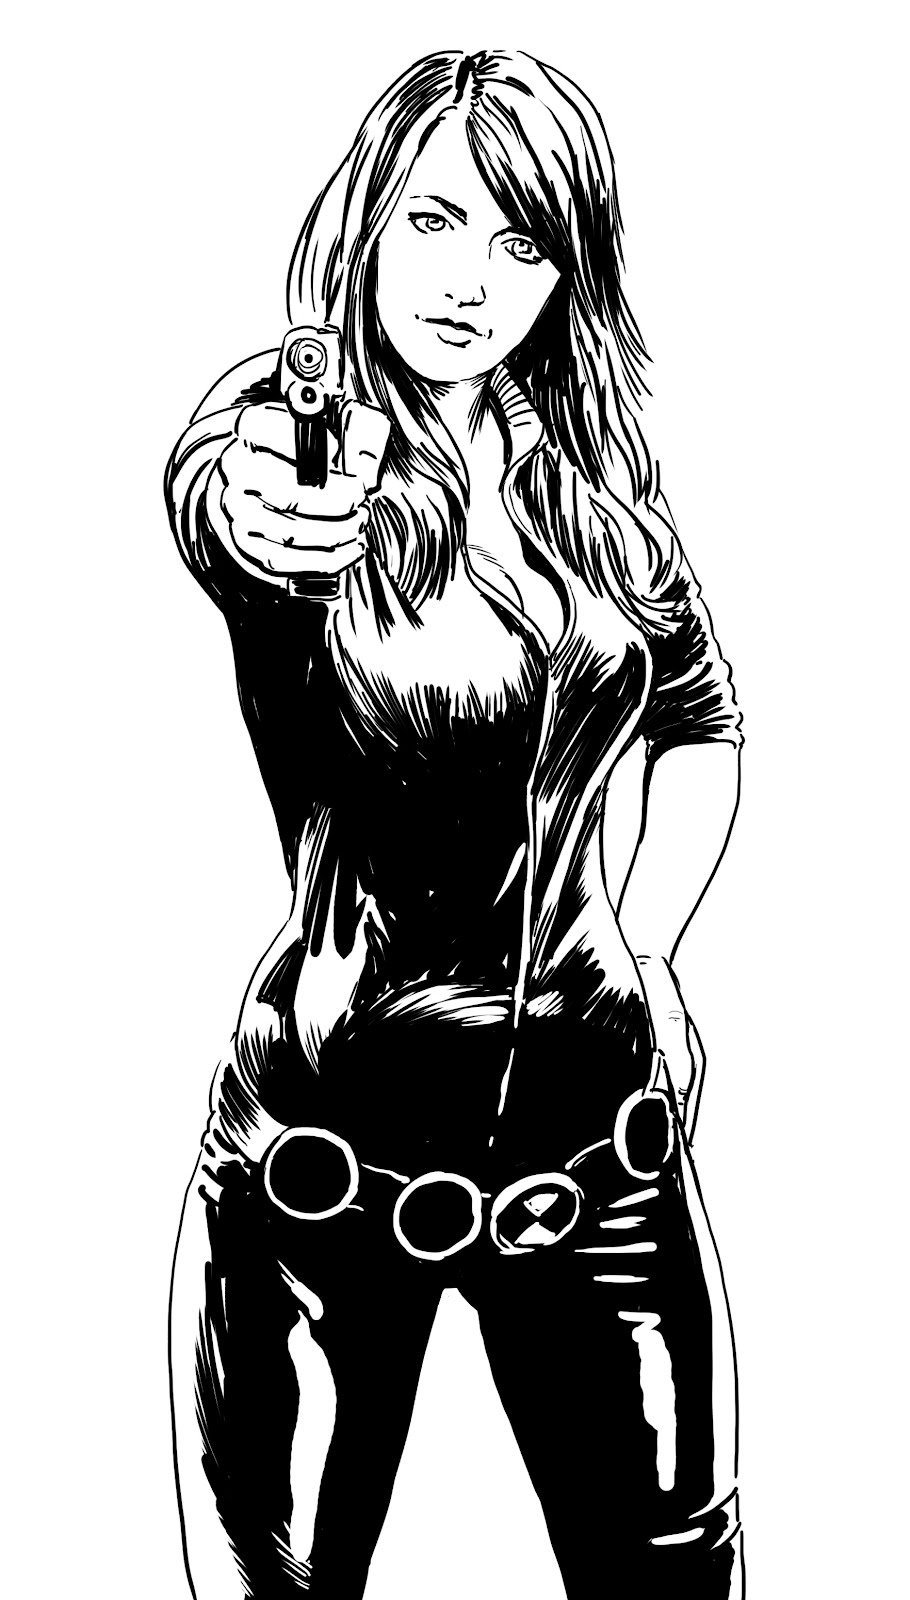 Download Avengers Coloring Pages Here Blackwidow: Avengers Black And White Drawings